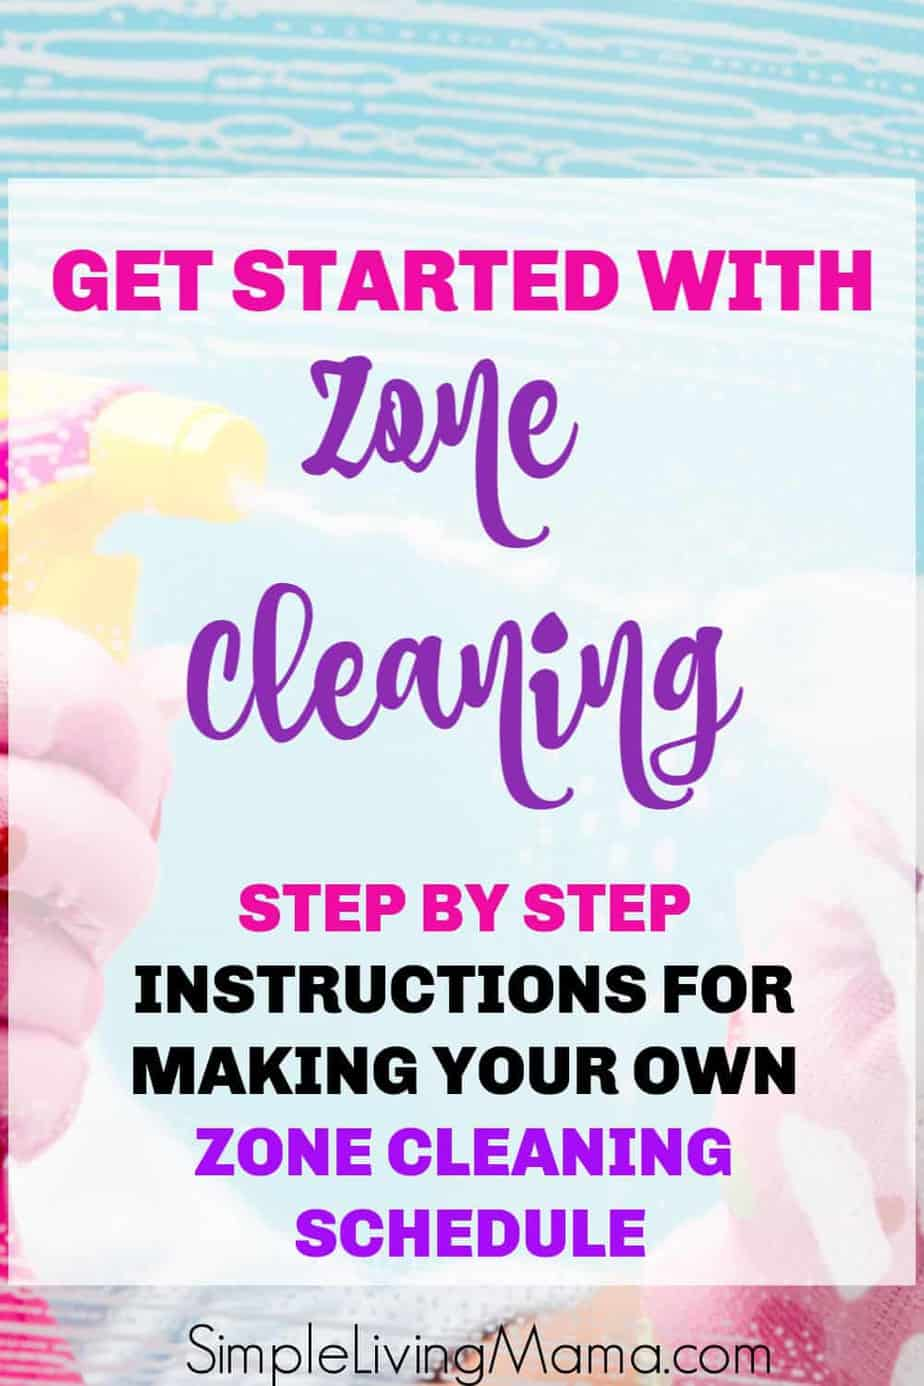 Learn how to get started with zone cleaning to keep your home cleaner all year long!